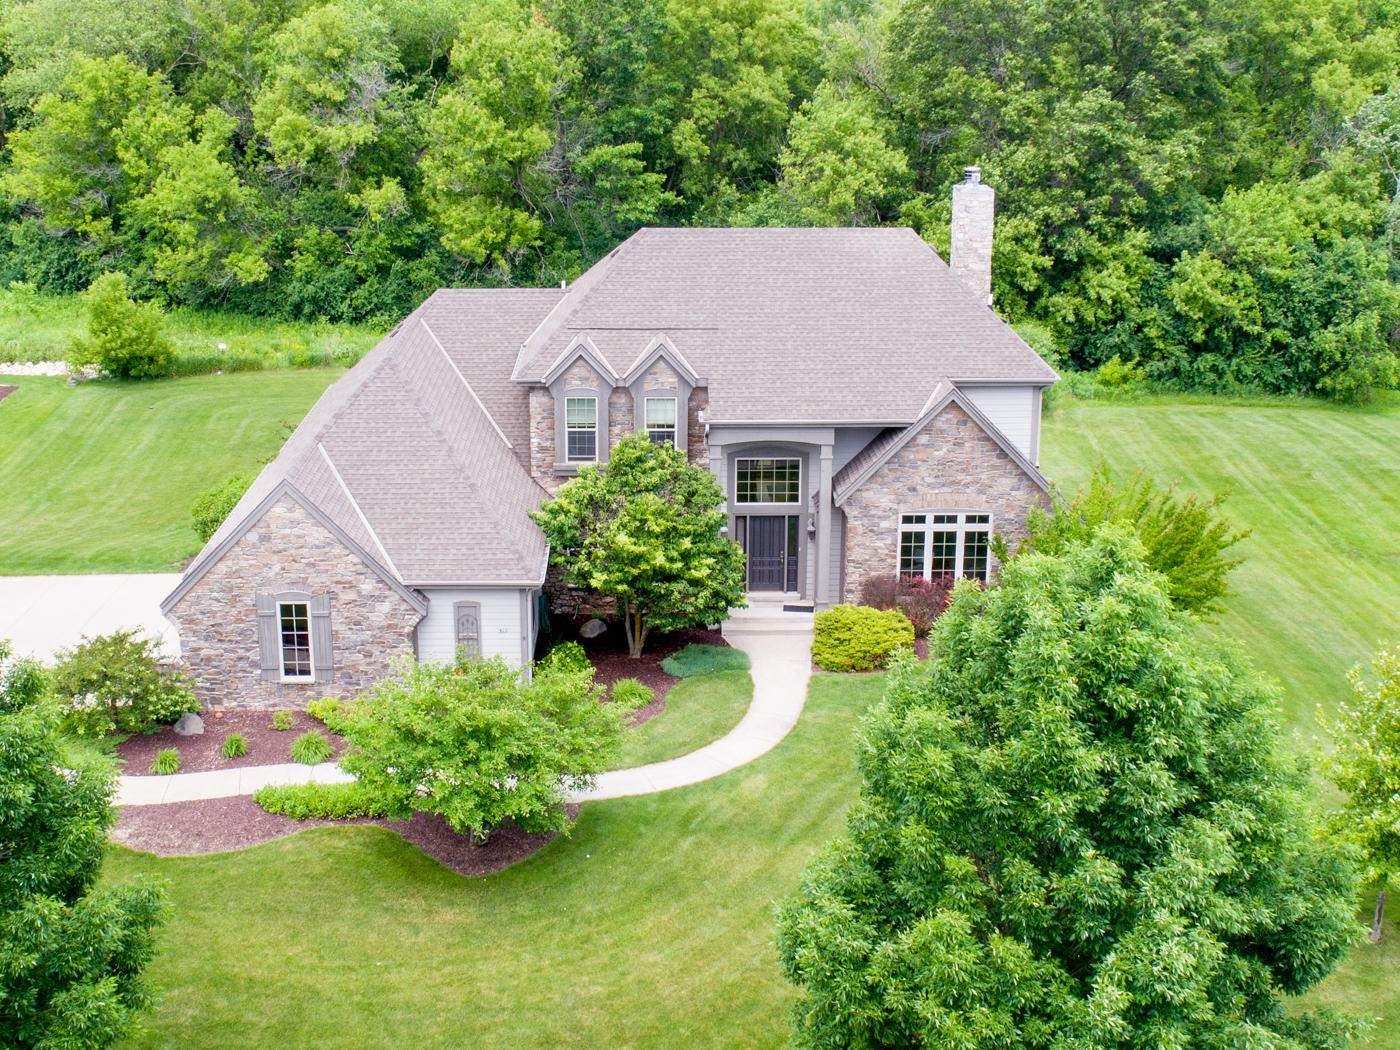 422 River Grove Ln, Hartland, Wisconsin 53029, 4 Bedrooms Bedrooms, 10 Rooms Rooms,3 BathroomsBathrooms,Single-Family,For Sale,River Grove Ln,1645513